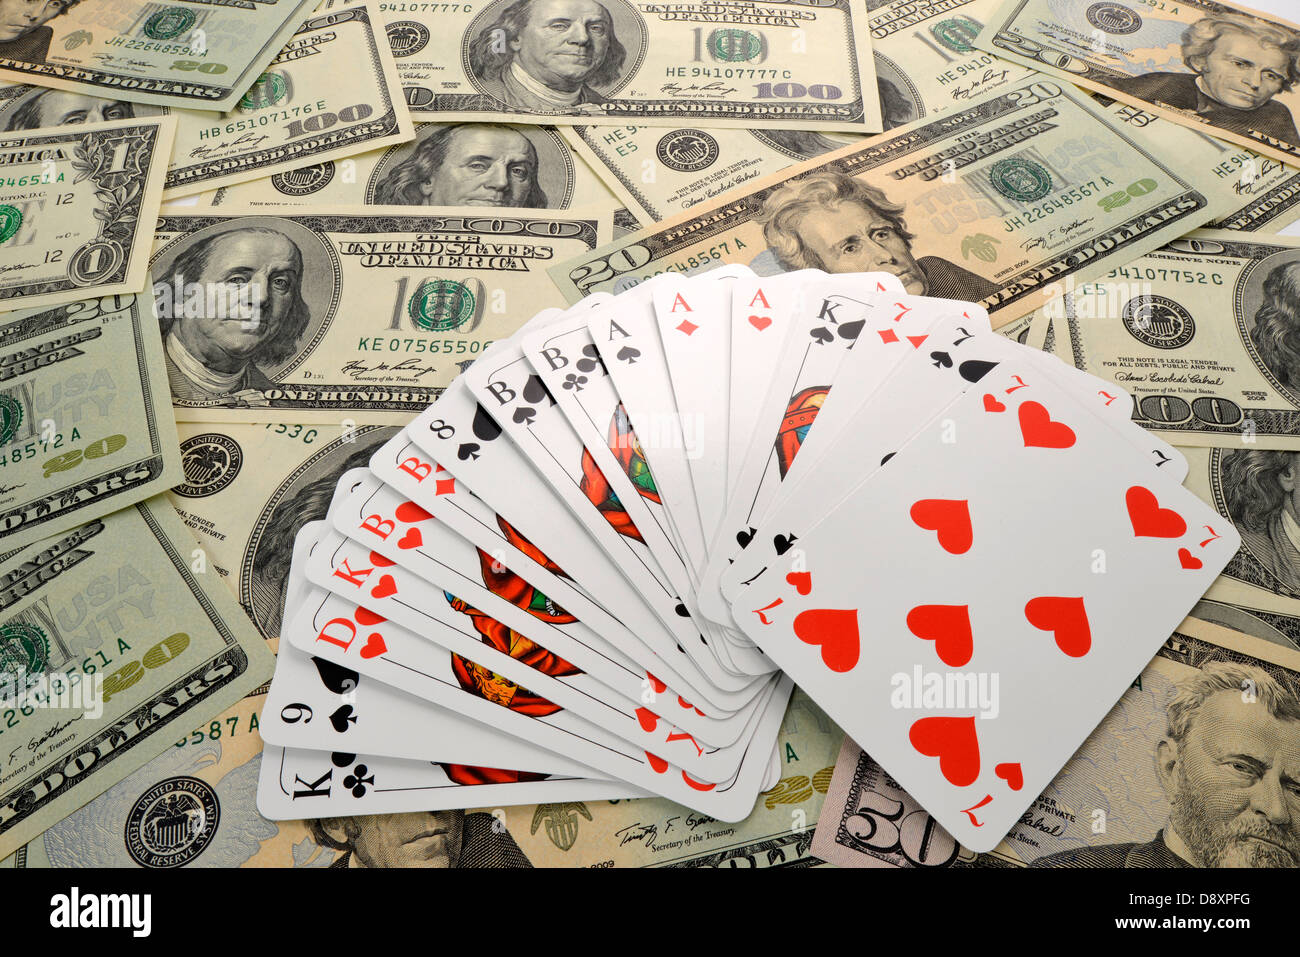 Symbolic picture game of chance, dollar notes, playing cards - Stock Image